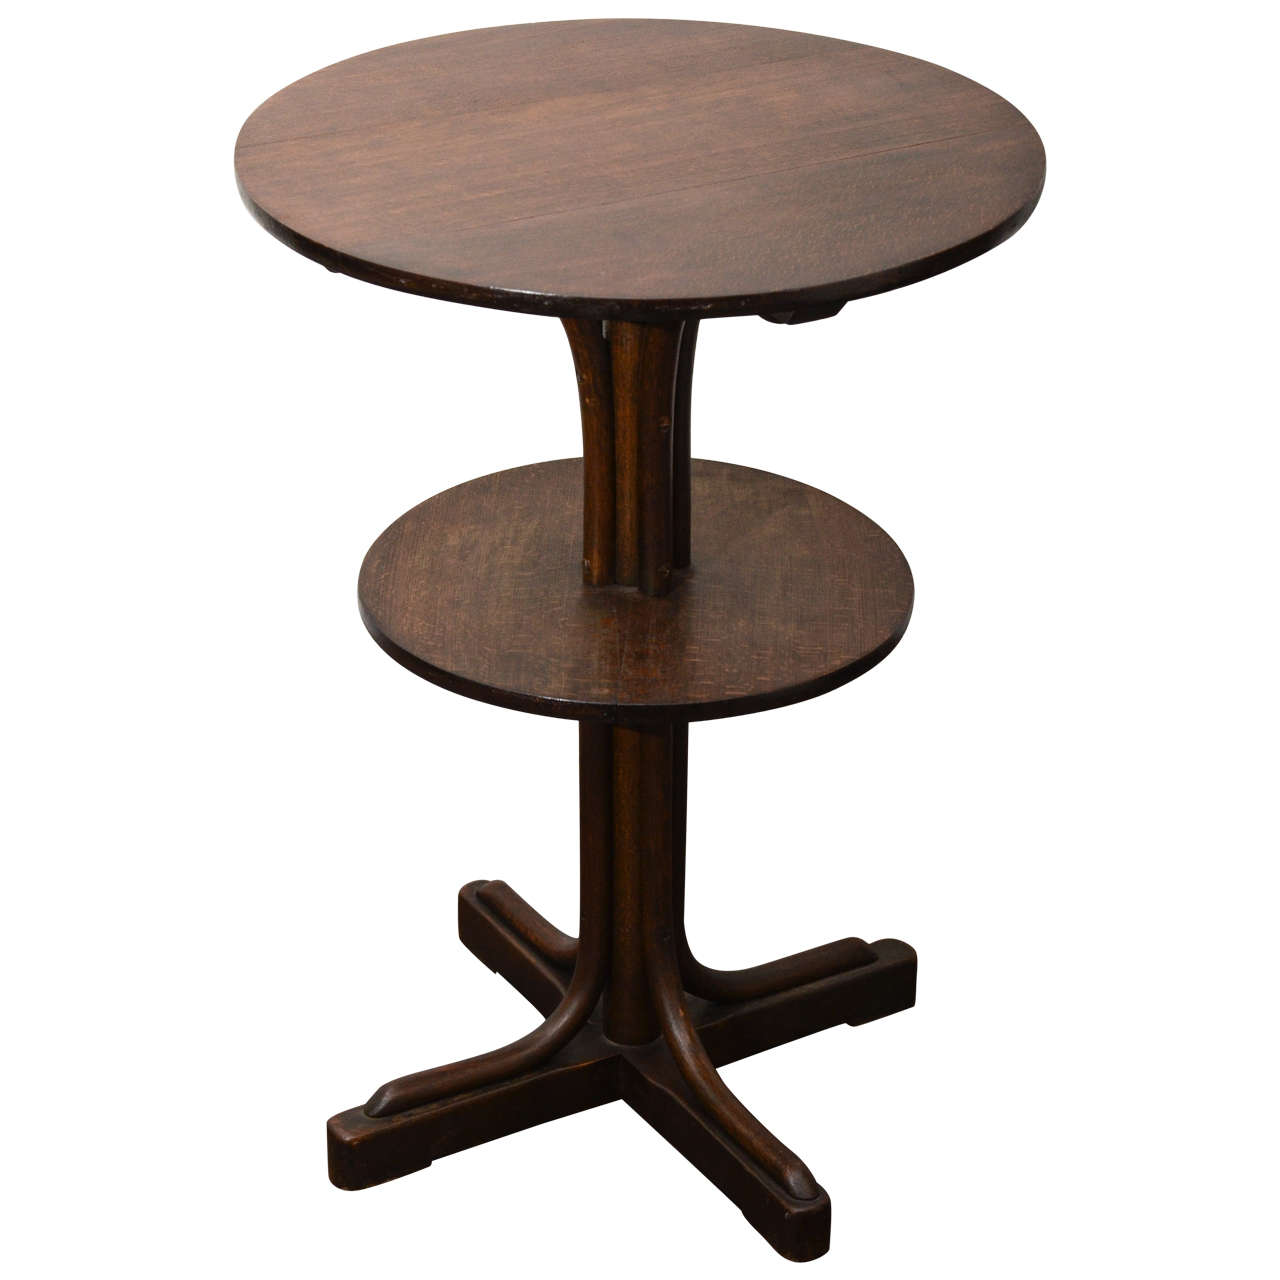 60 Mid Century Modern Vintage Half Moon Coffee Table: Two-Tiered Round Wooden Side Table In The Style Of Thonet